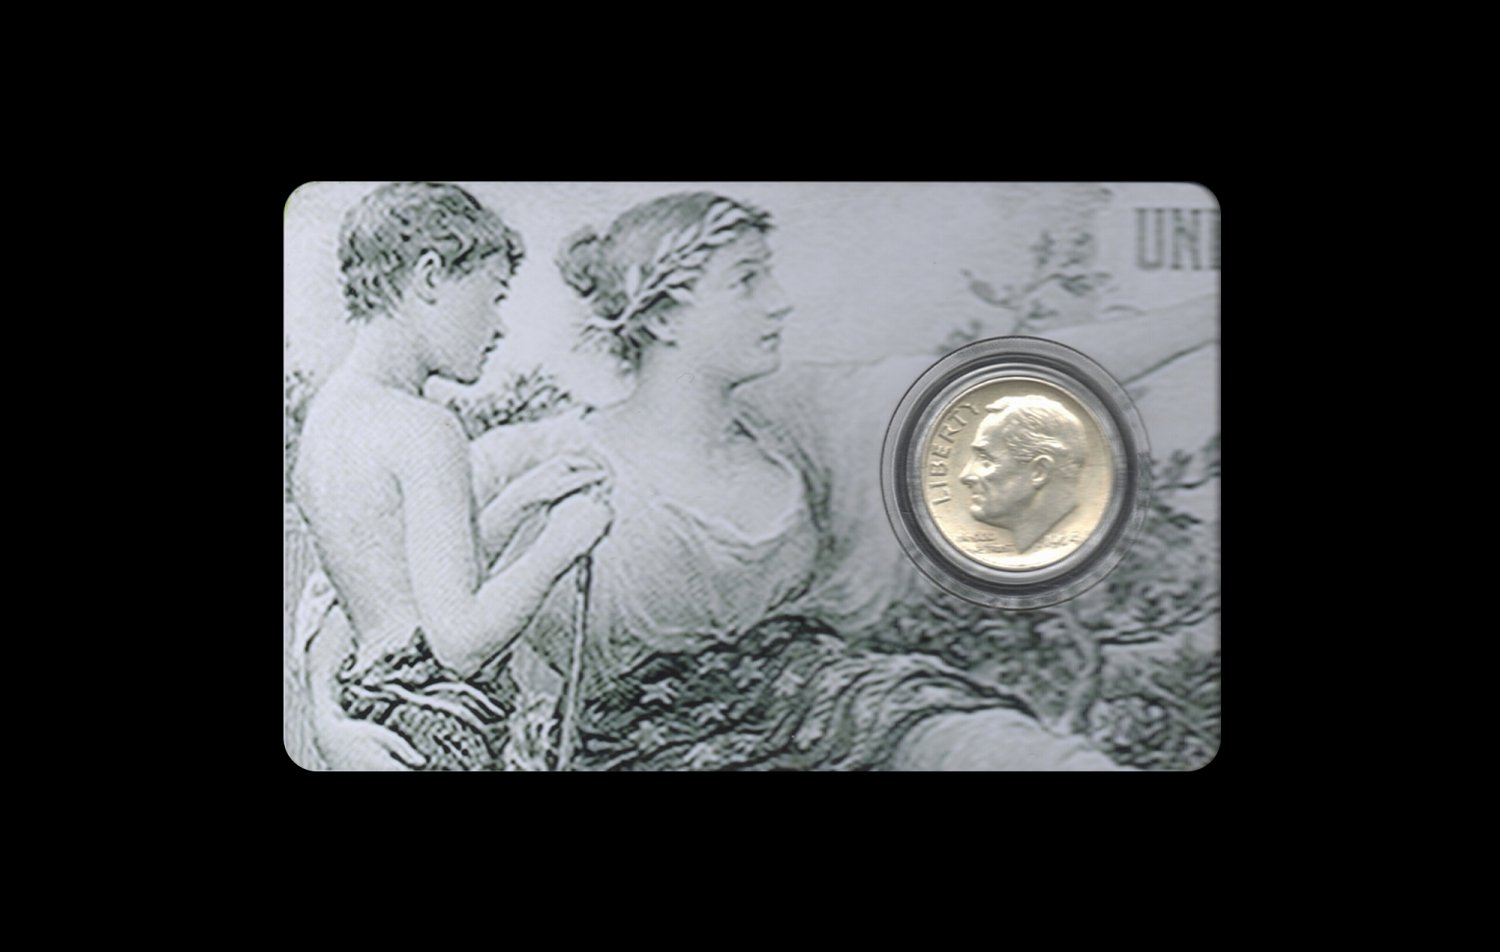 Pre-1965 US Silver Dime Card: History Instructing Youth